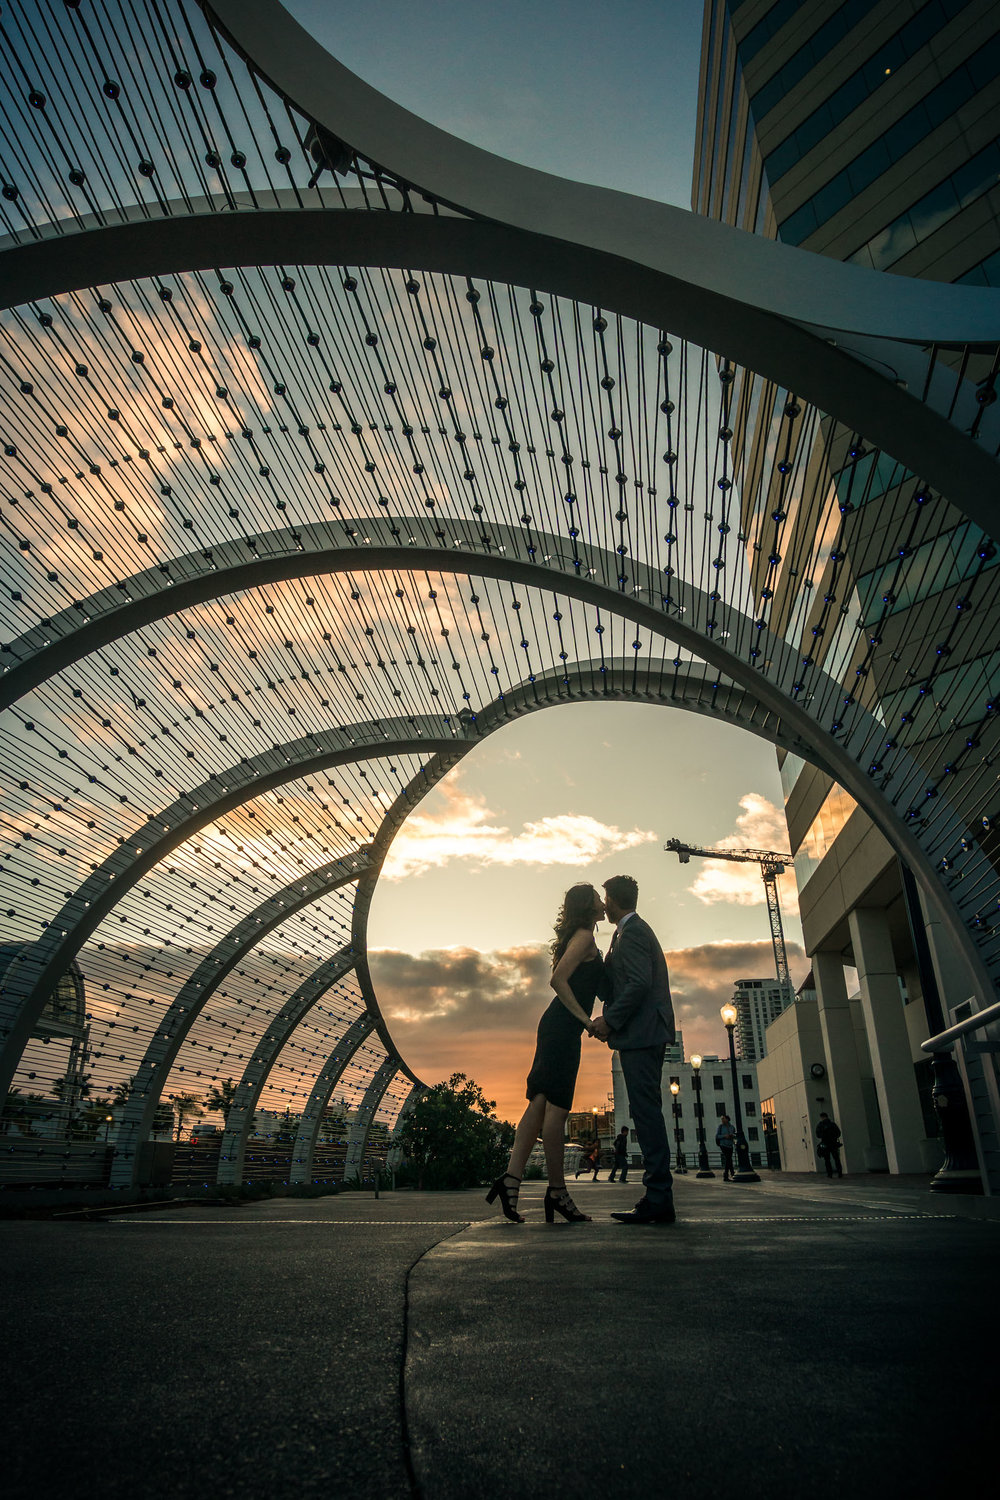 Silhouette of a husband and wife holding hands during a professional portrait photo shoot at the rainbow Bridge At the Long Beach convention Center